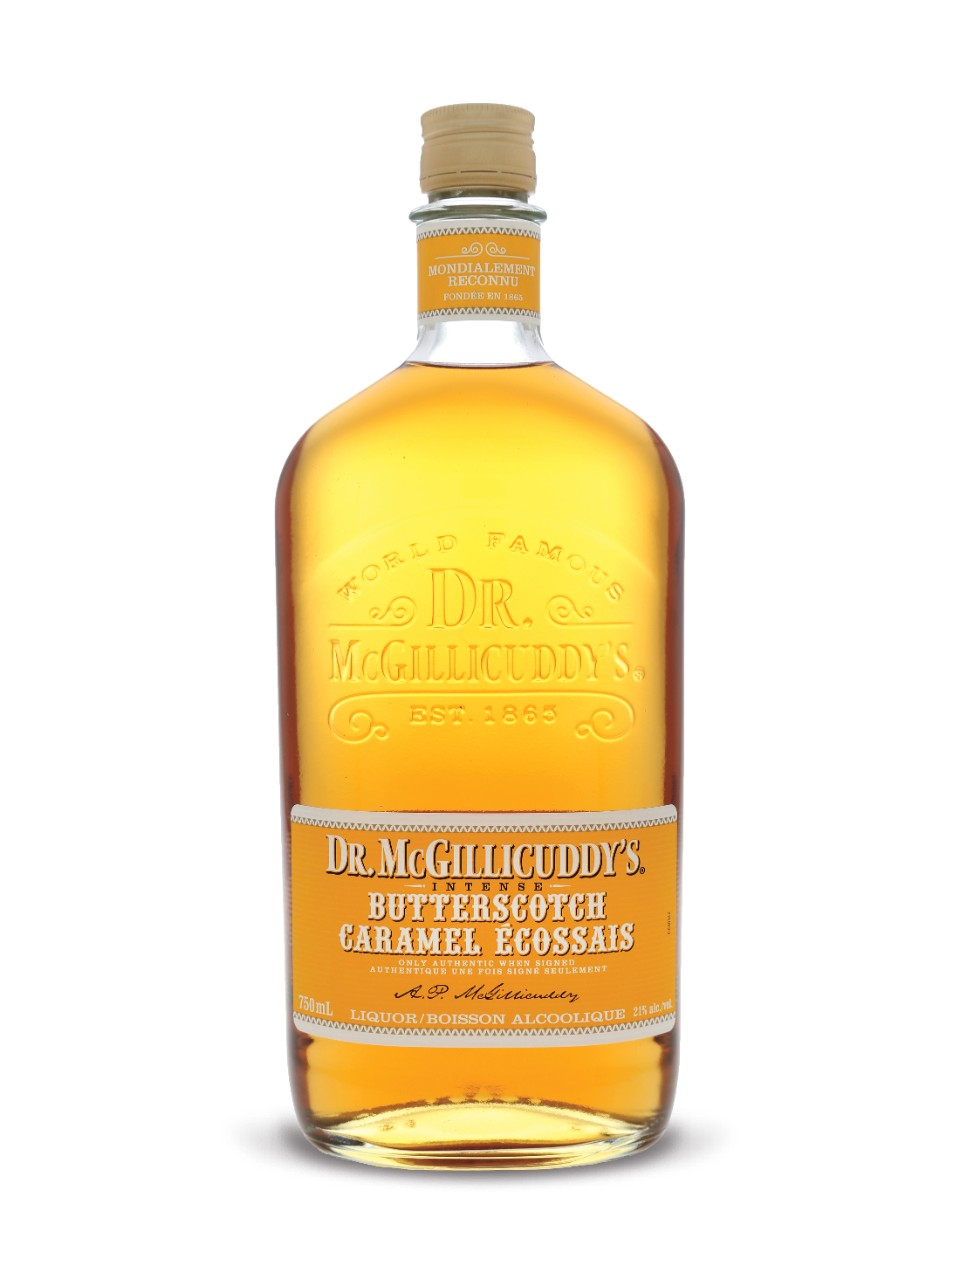 Dr. McGillicuddy's Intense Butterscotch from LCBO